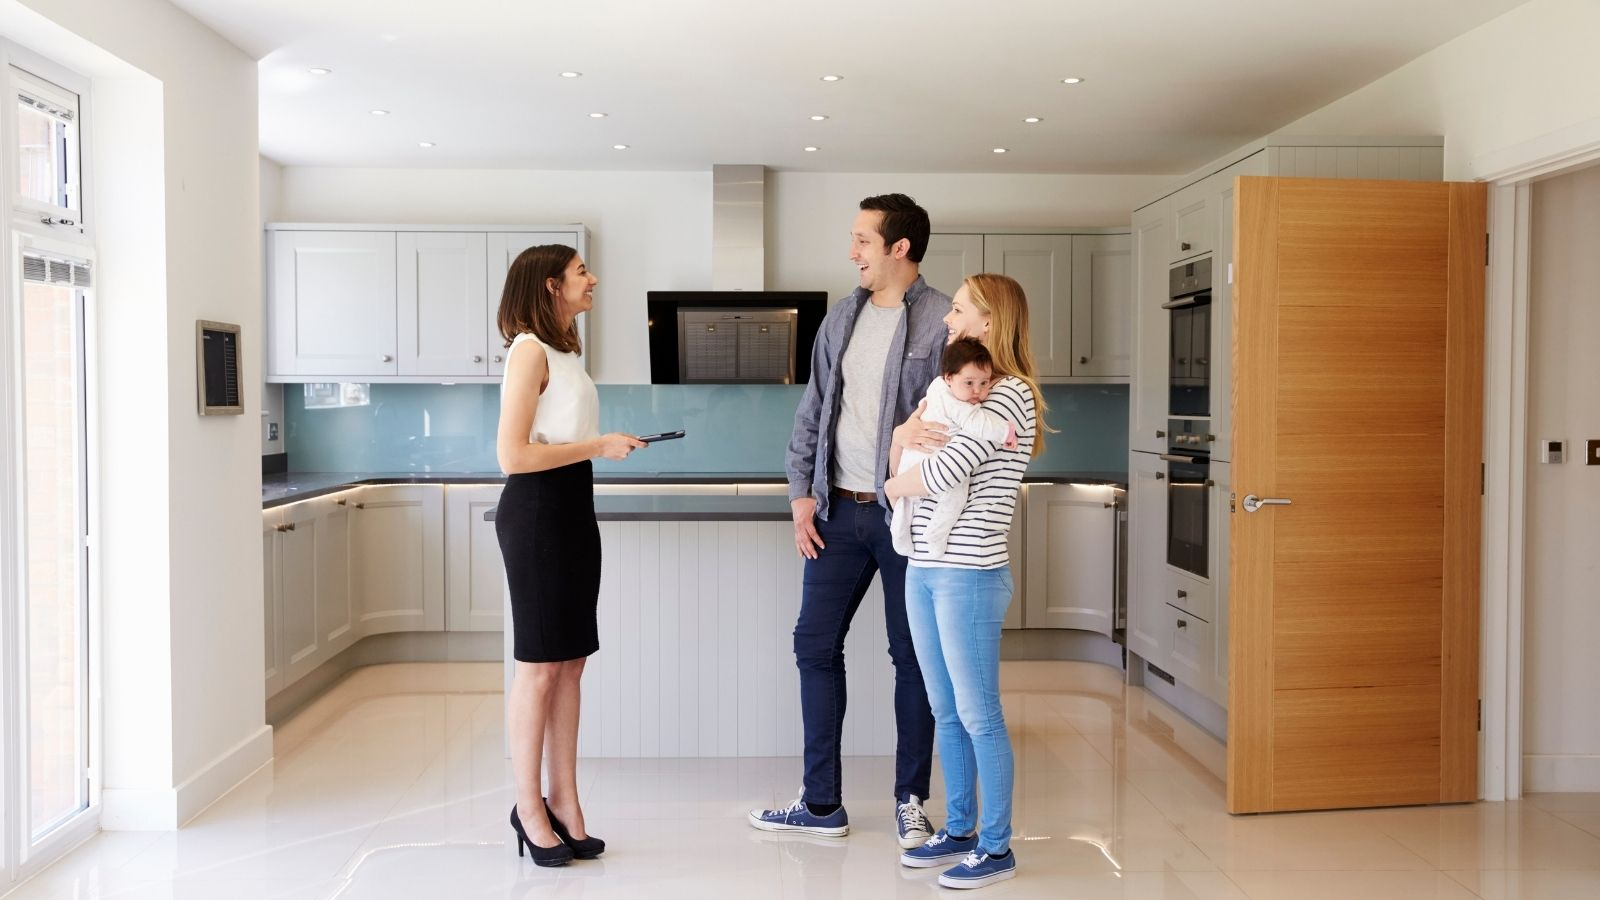 How to Buy a House When Selling Another